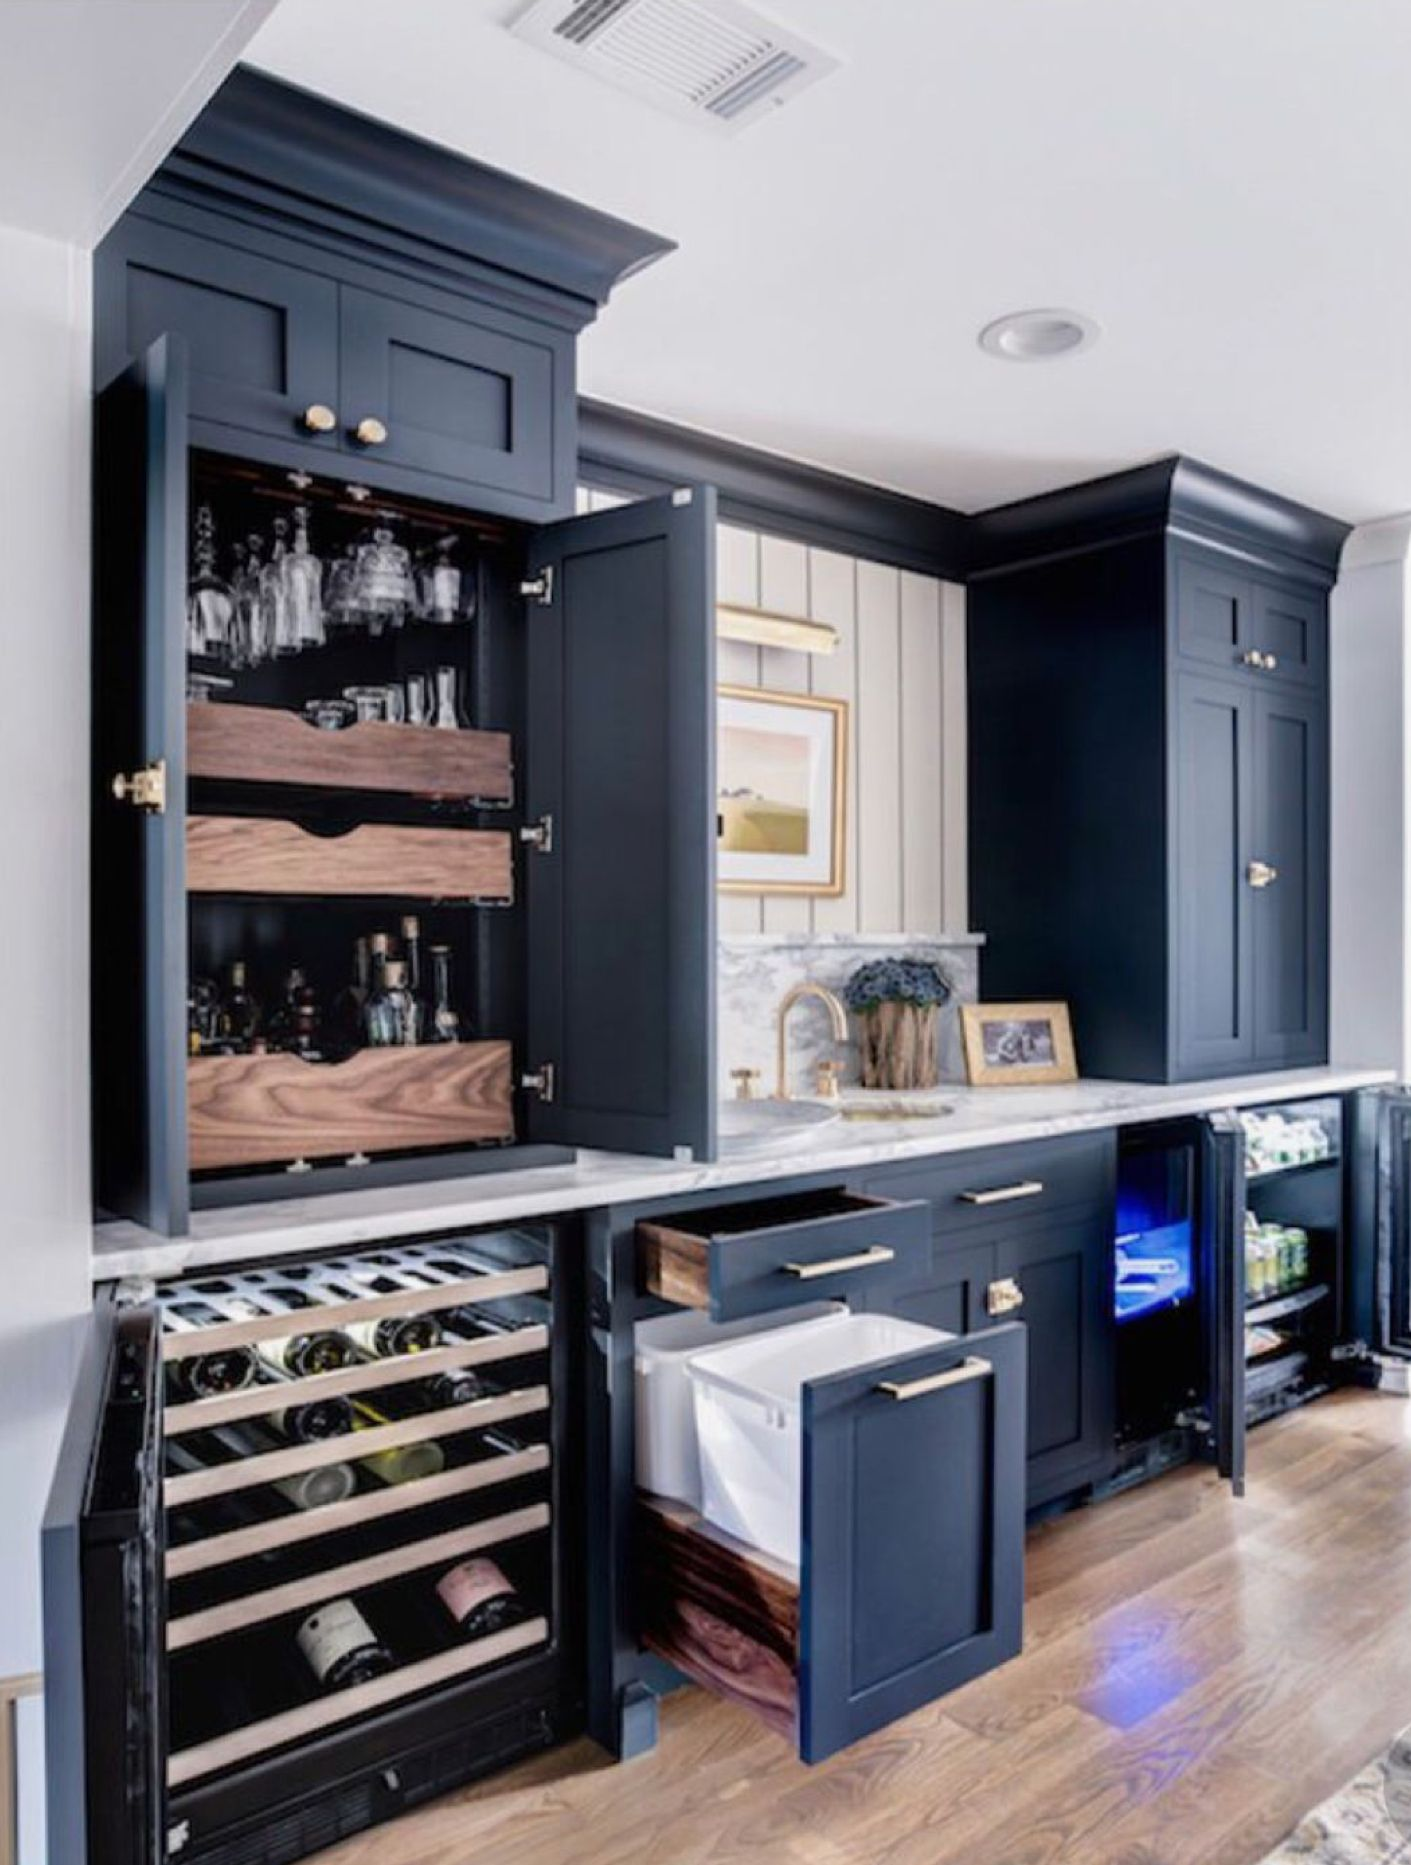 Hows This Kitchenette For Inspo Love The Dark Navy And The Countless Storage Options Bars For Home Kitchen Pantry Design Home Bar Designs